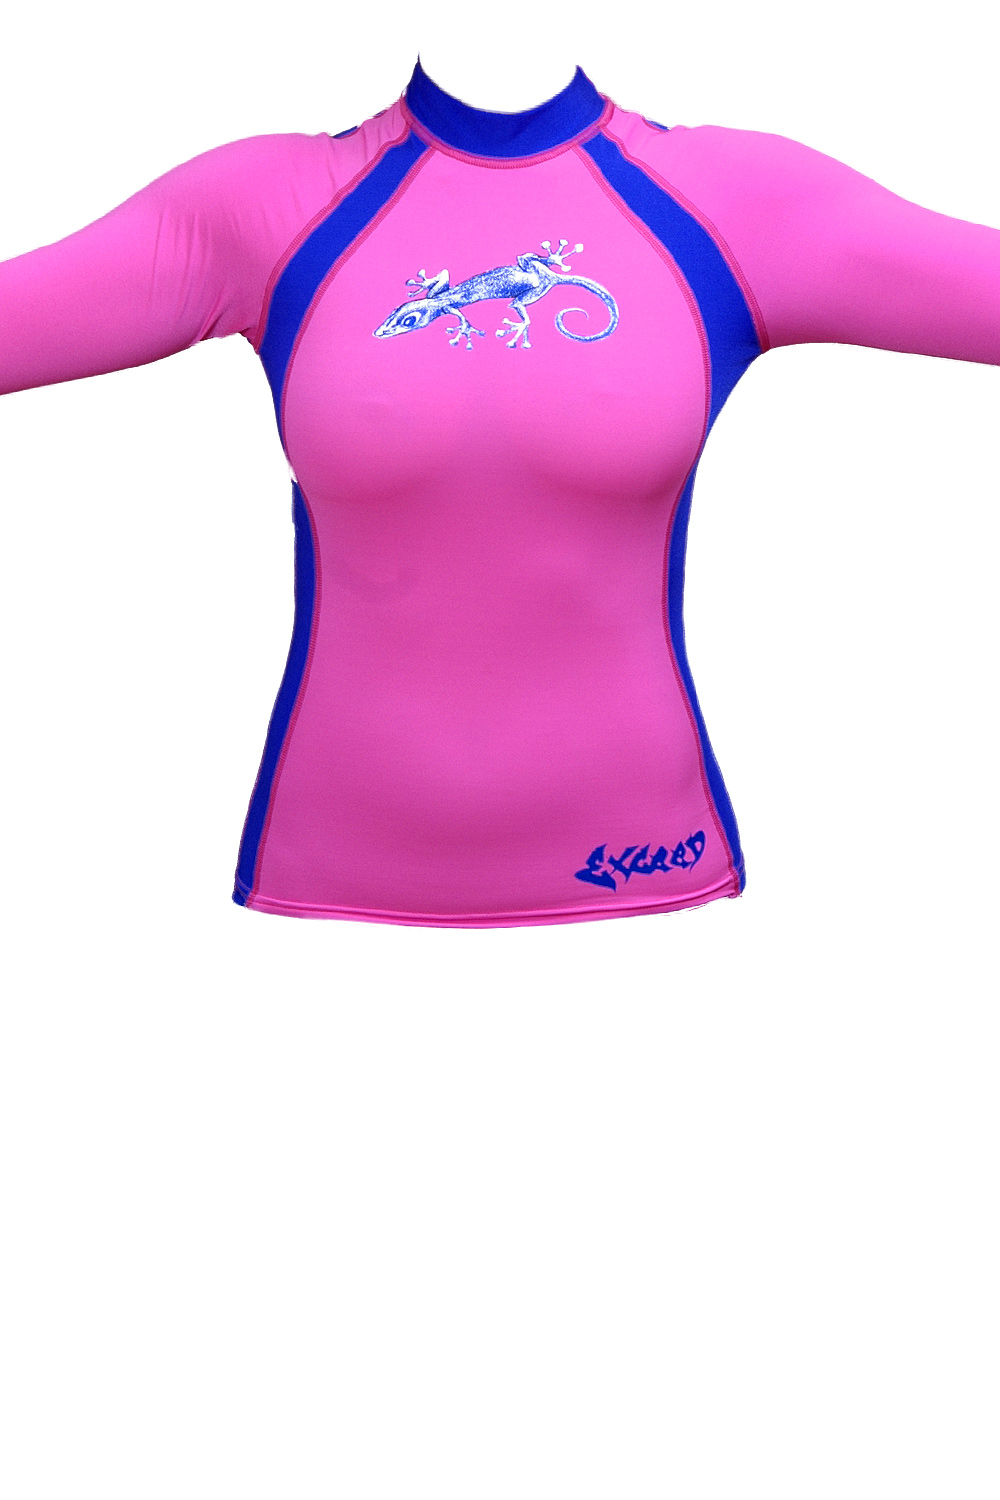 Exceed Evasive Womens Long Sleeve Rash Guard